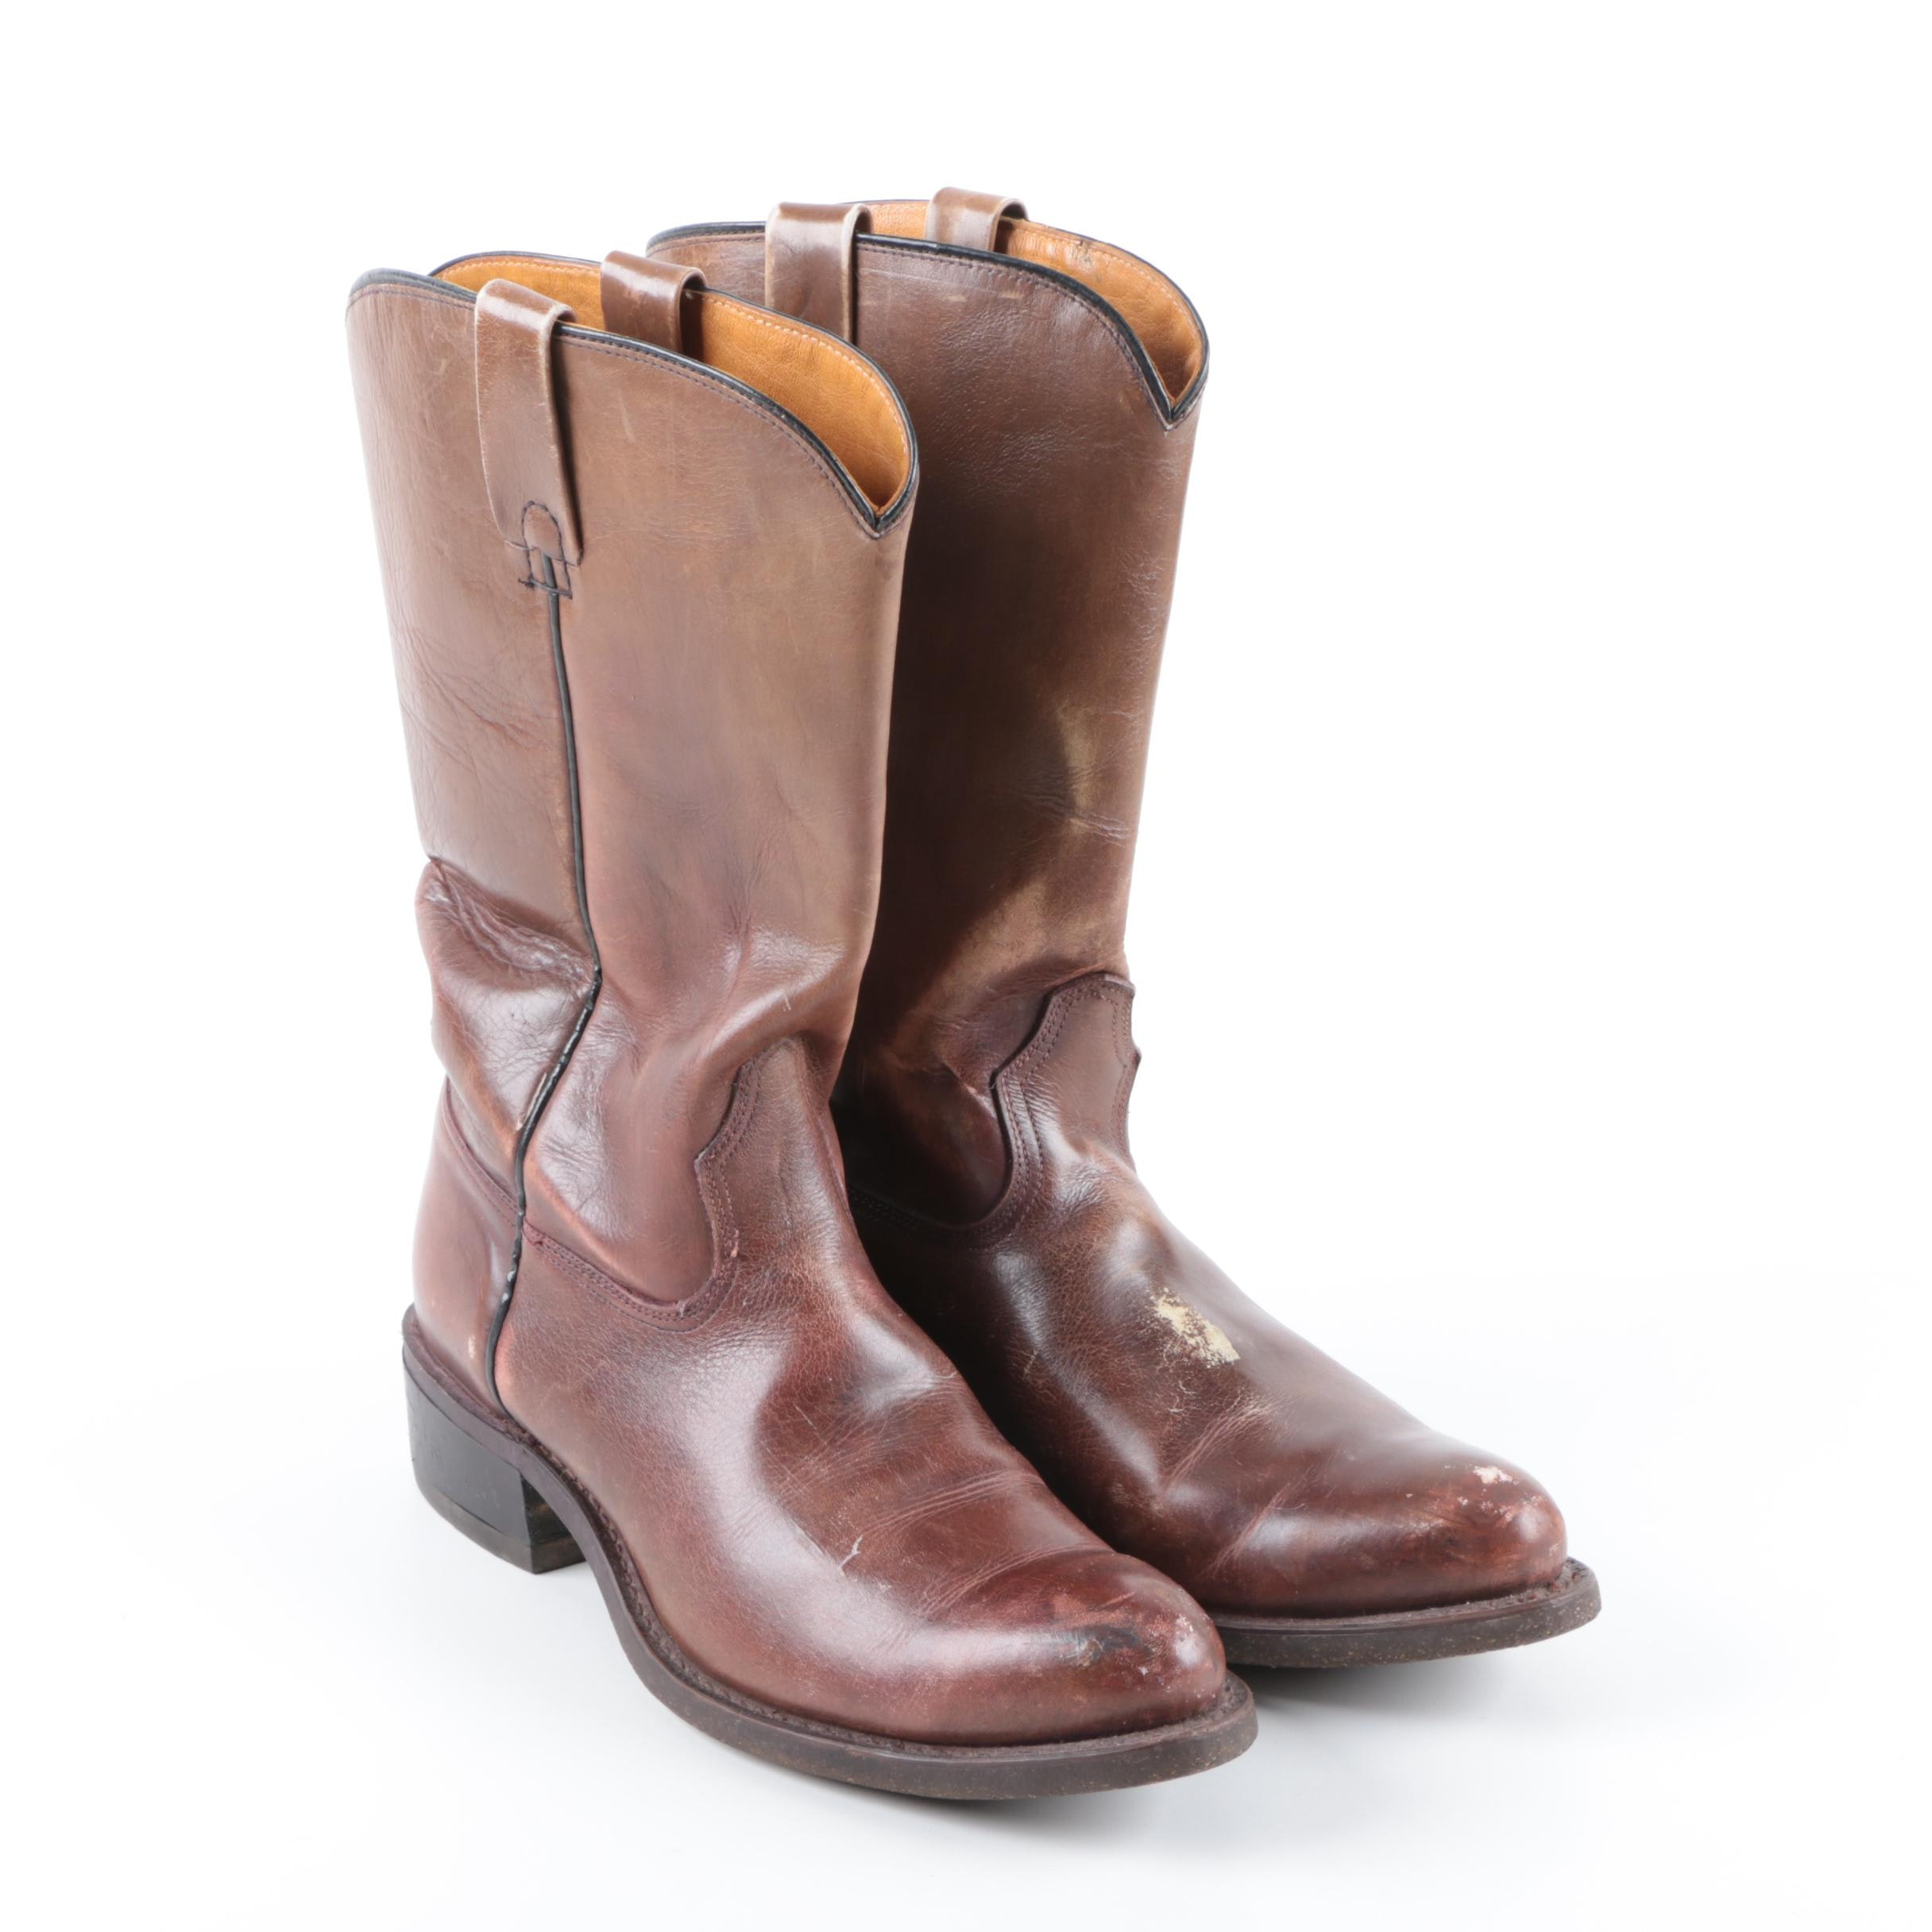 Vintage Custom Made Leather Cowboy Boots